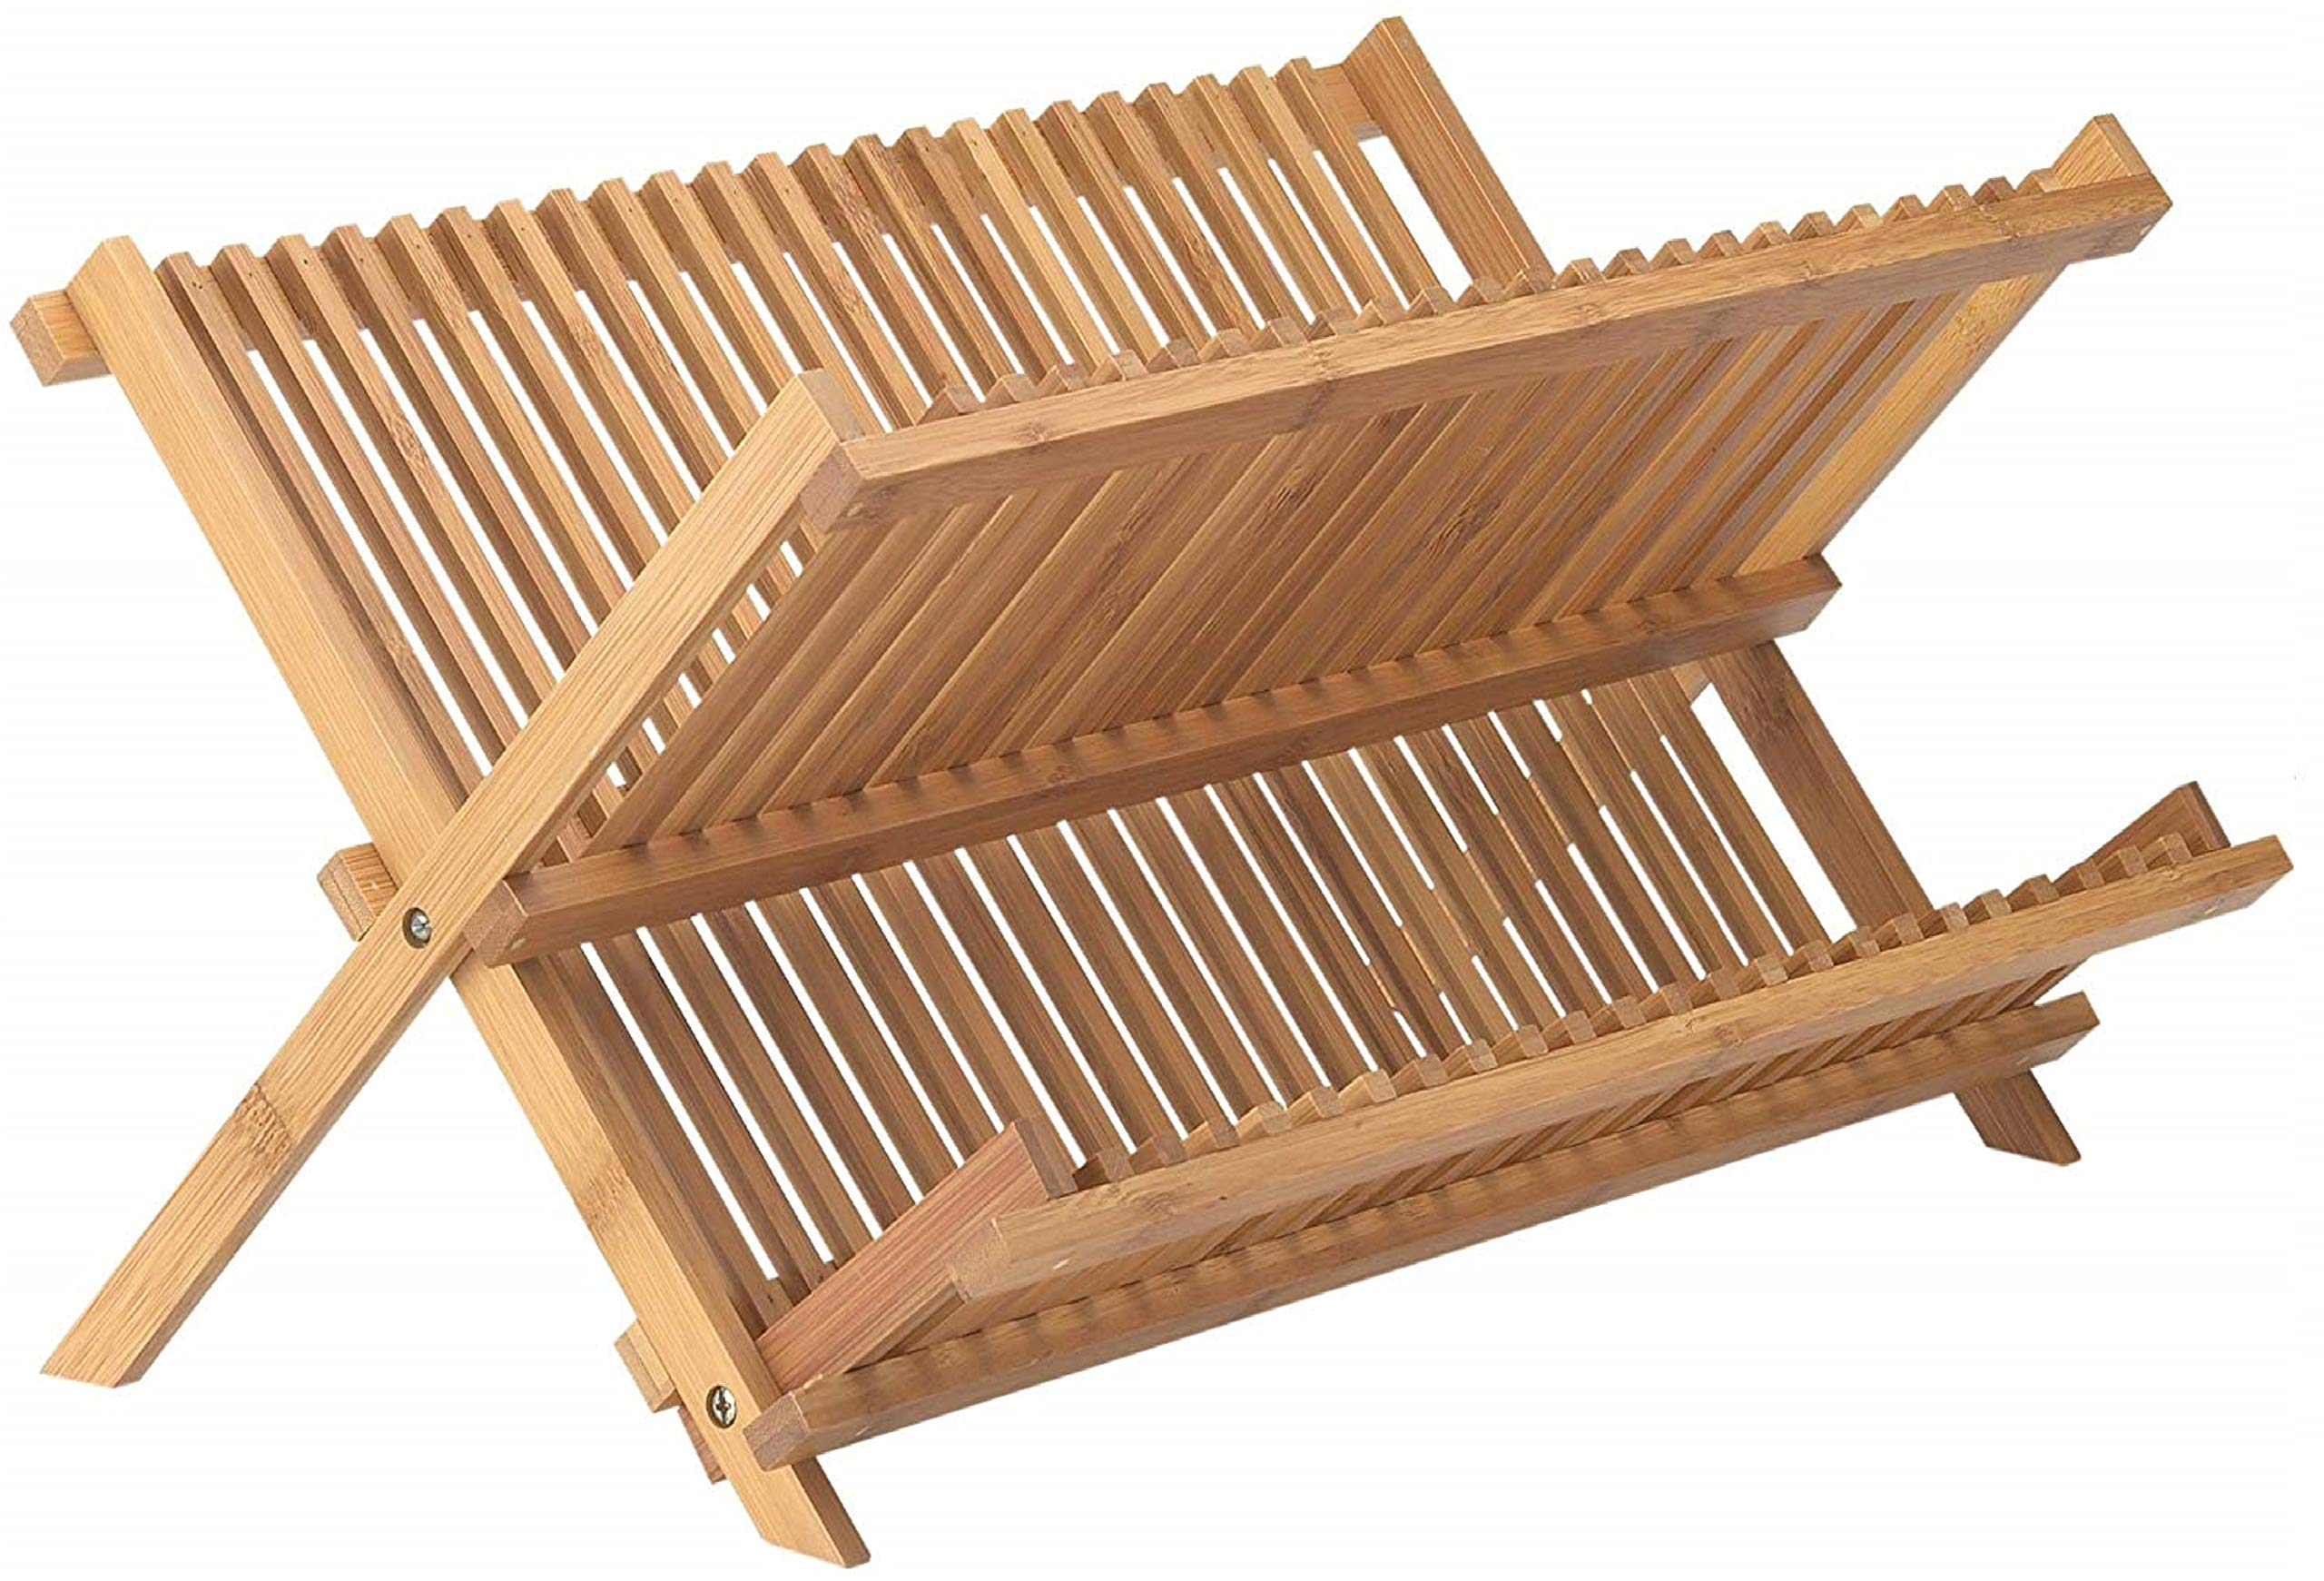 Neet Bamboo Dish Drying Rack   2 Tier Folding Collapsible   18.5'' X 13'' Inches   Organic Wooden Dish Drainer Wood Kitchen Utensil & Plate Dryer